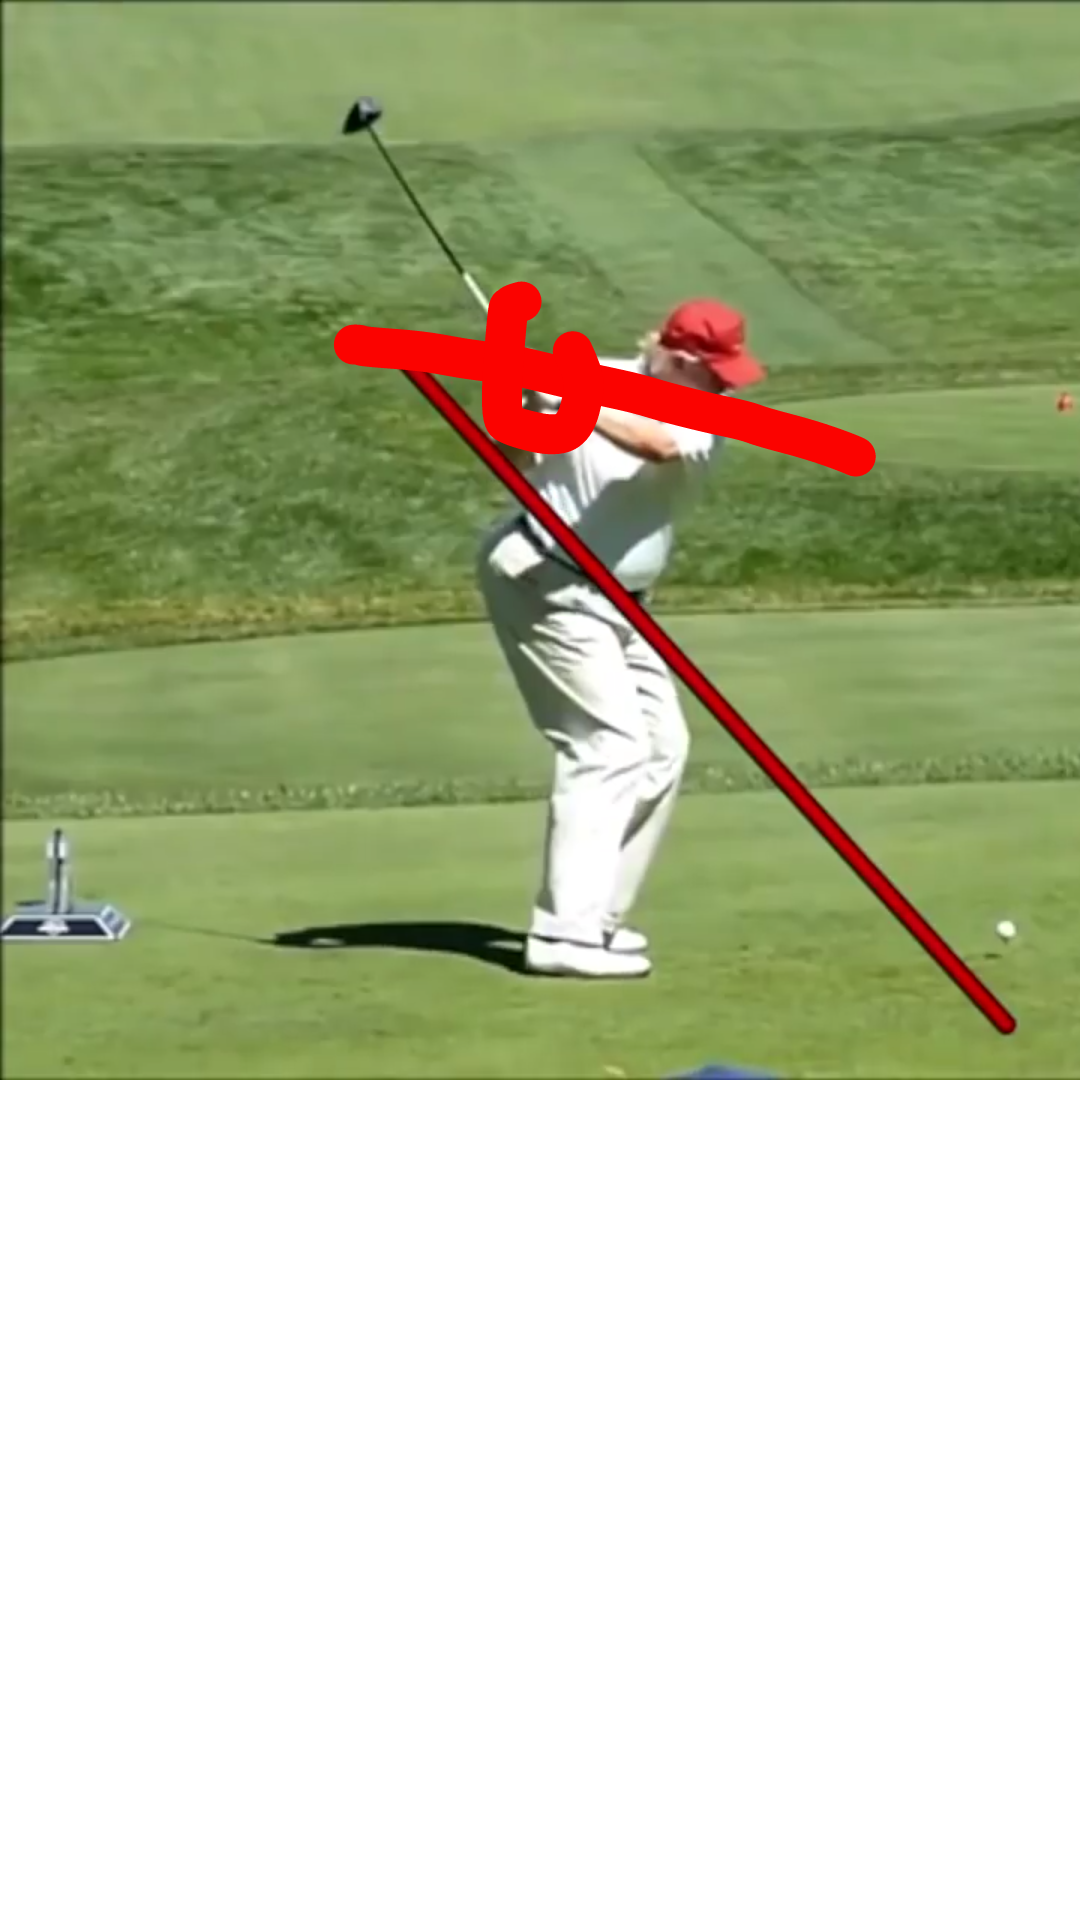 Donald Trump Golf Swing